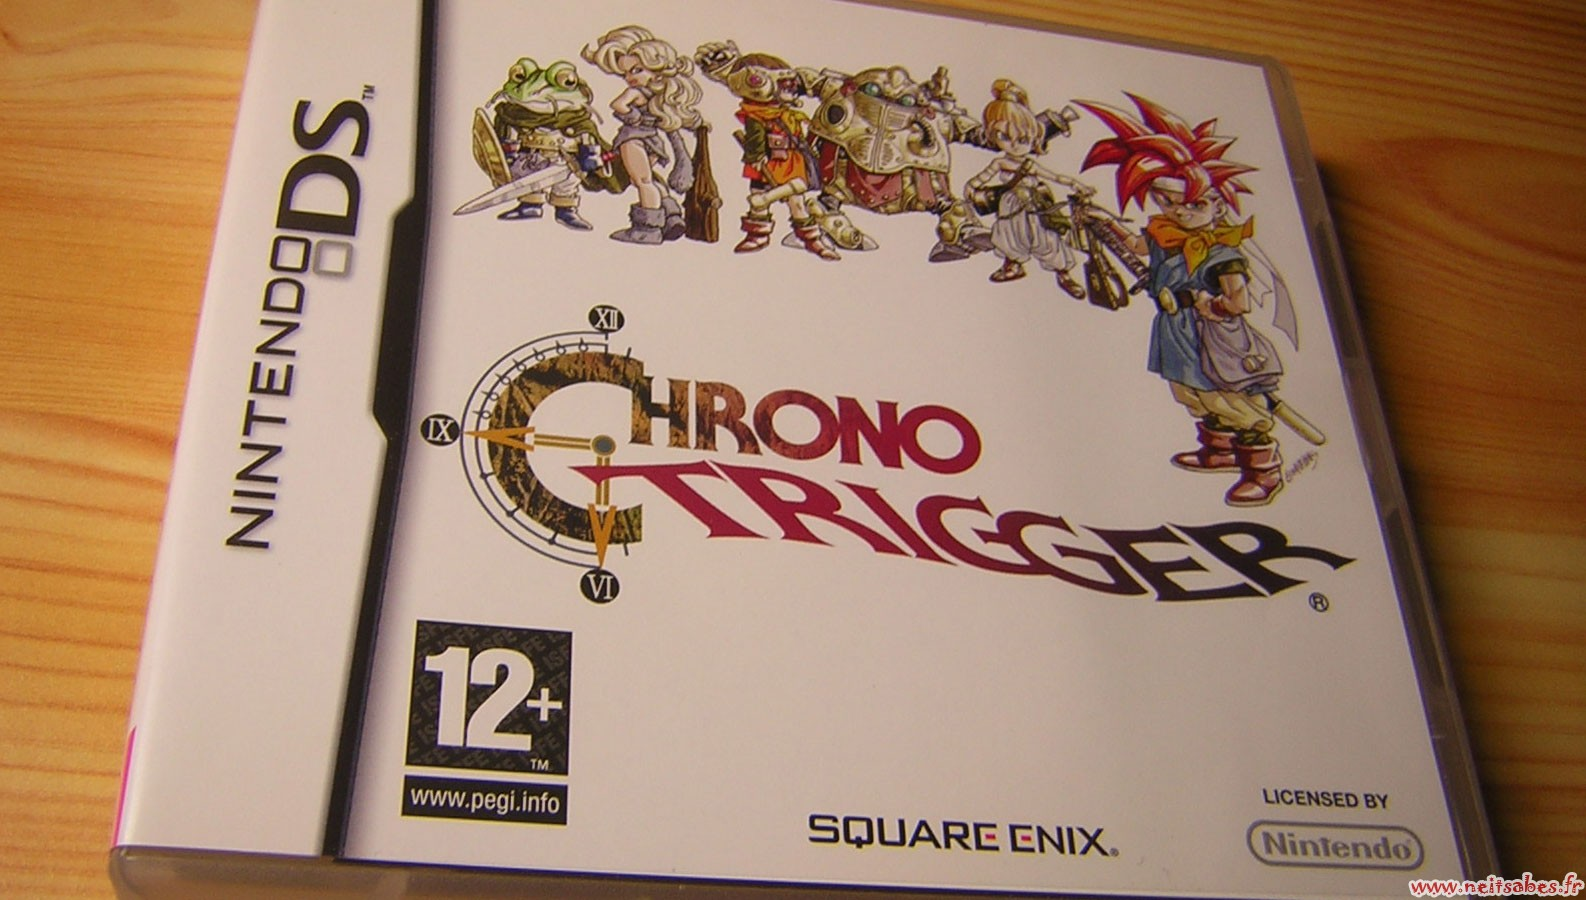 Achat - Chrono Trigger (DS) & Valkyrie Profile 2 (PS2)